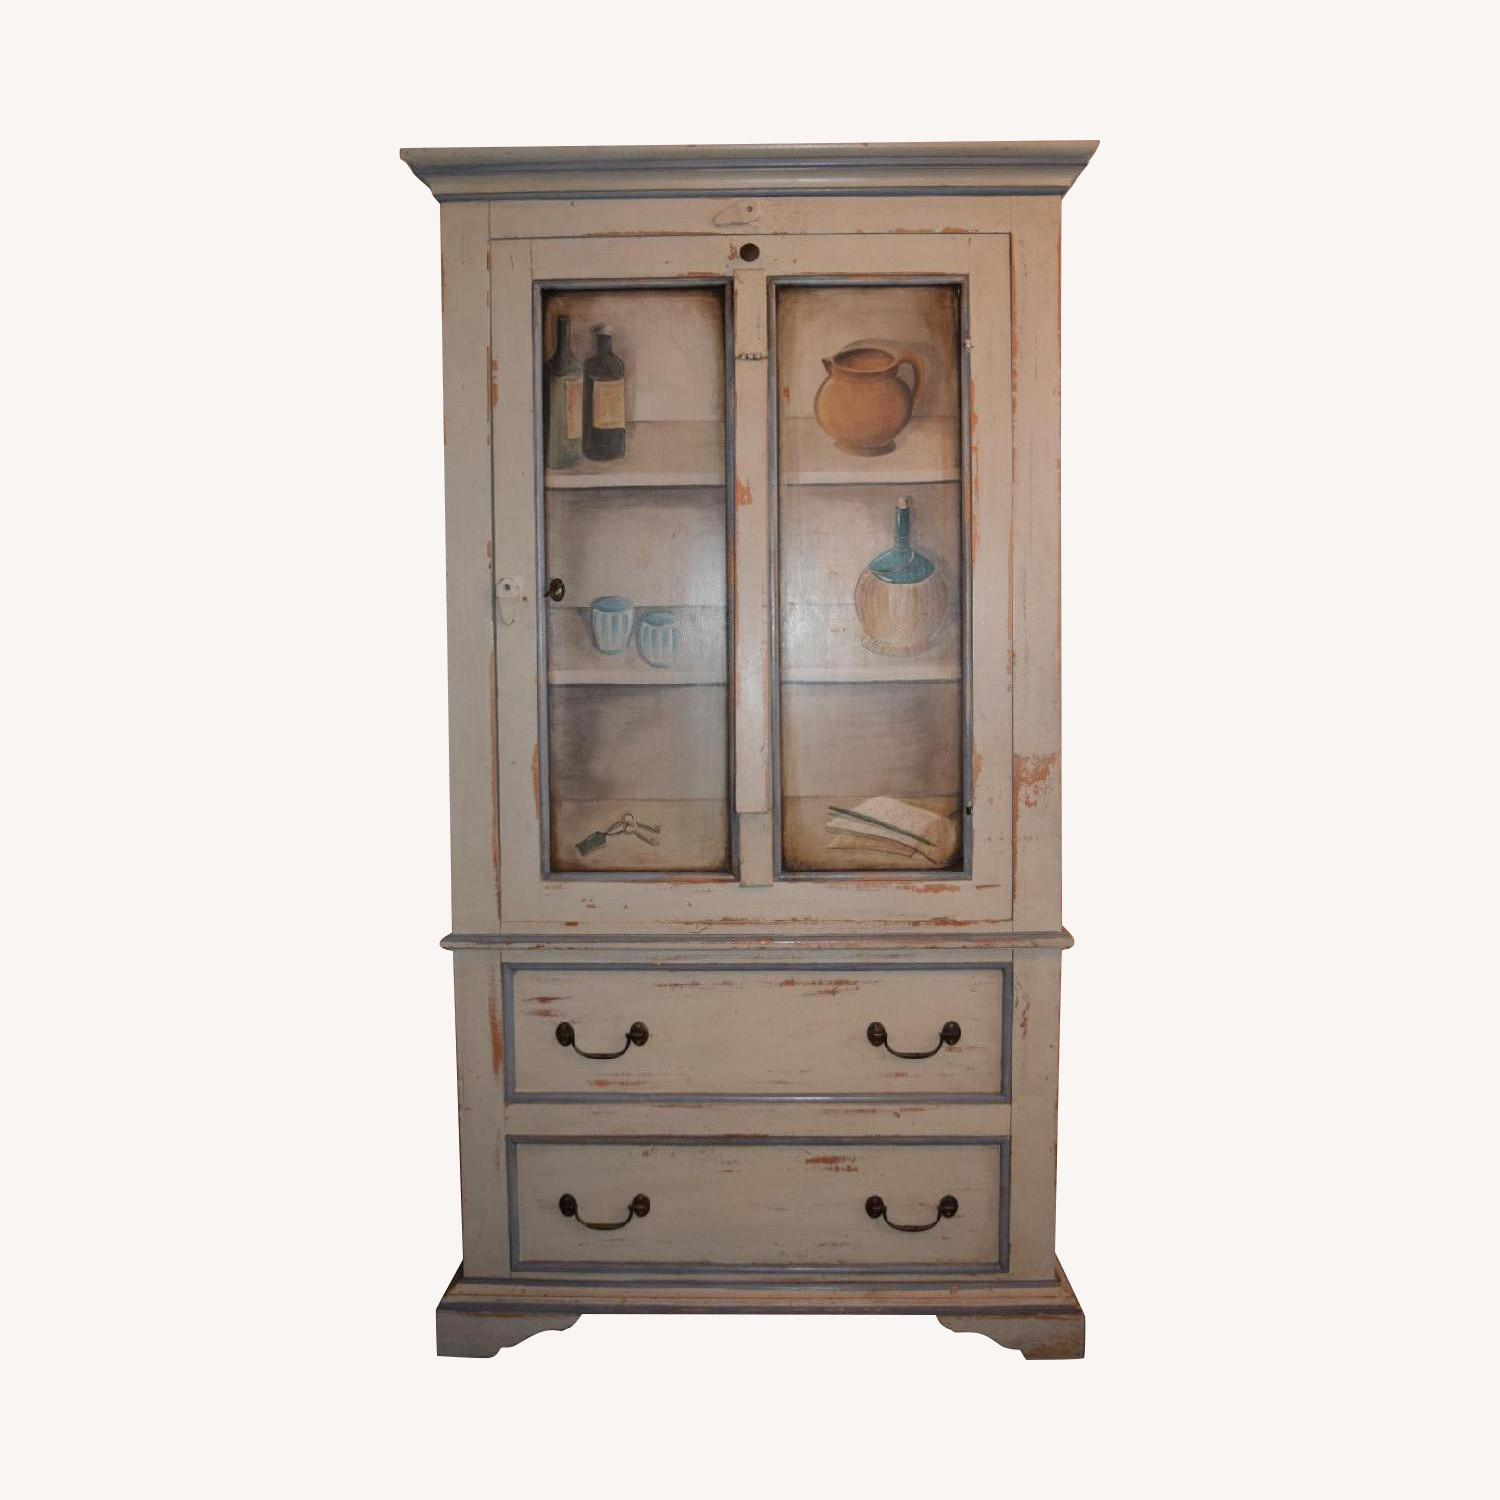 Shabby Chic Hand-Painted Distressed Cabinet - image-0